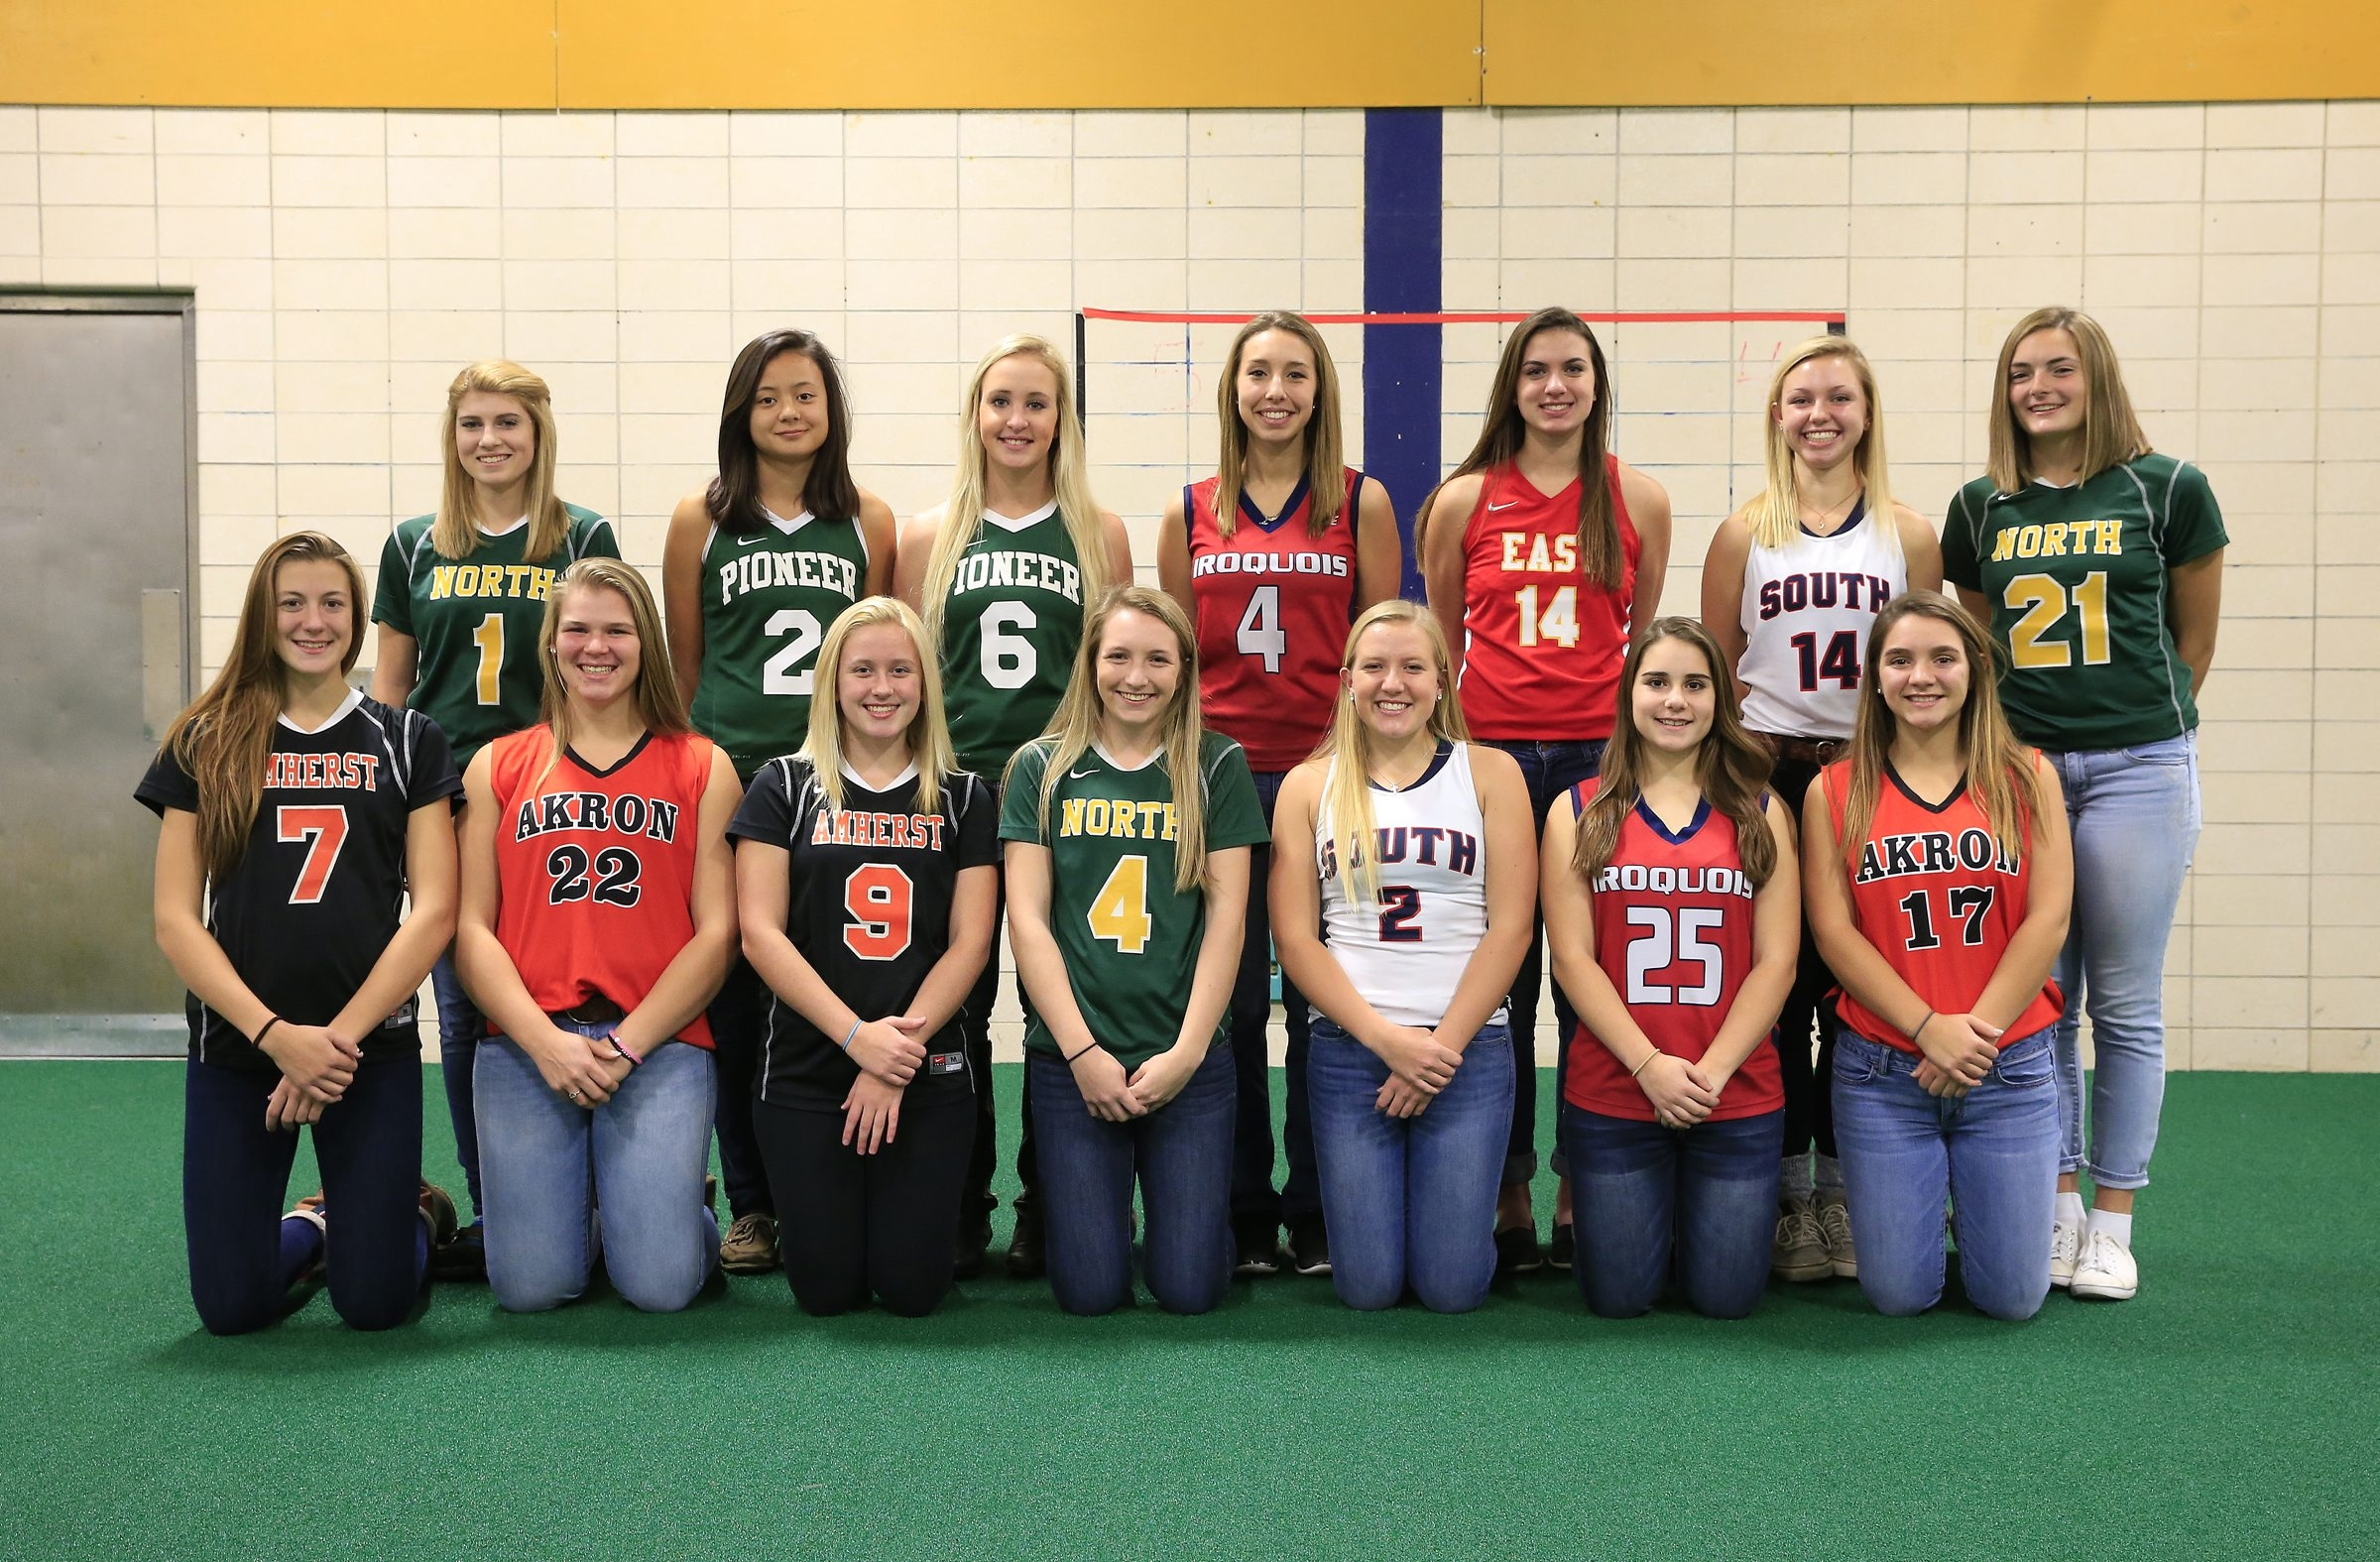 The best of the field: Front row, from left, McKenna Rushford (Amherst), Abigail Stone (Akron), Jenna Sobol (Amherst), Mary Crumlish (Williamsville North), Abby Ferenczy (Williamsville South), Holly Stiller (Iroquois), Sarah Schultz (Akron). Back, row, from left, Shannon Quinlan (Williamsville North), Kelsey Chai (Pioneer), Lauren Vacinek (Pioneer), Abby D'Amato (Iroquois), Leah Rogers (Williamsville East), Marnie Reidell (Williamsville South), Clare Ahern (Williamsville North).